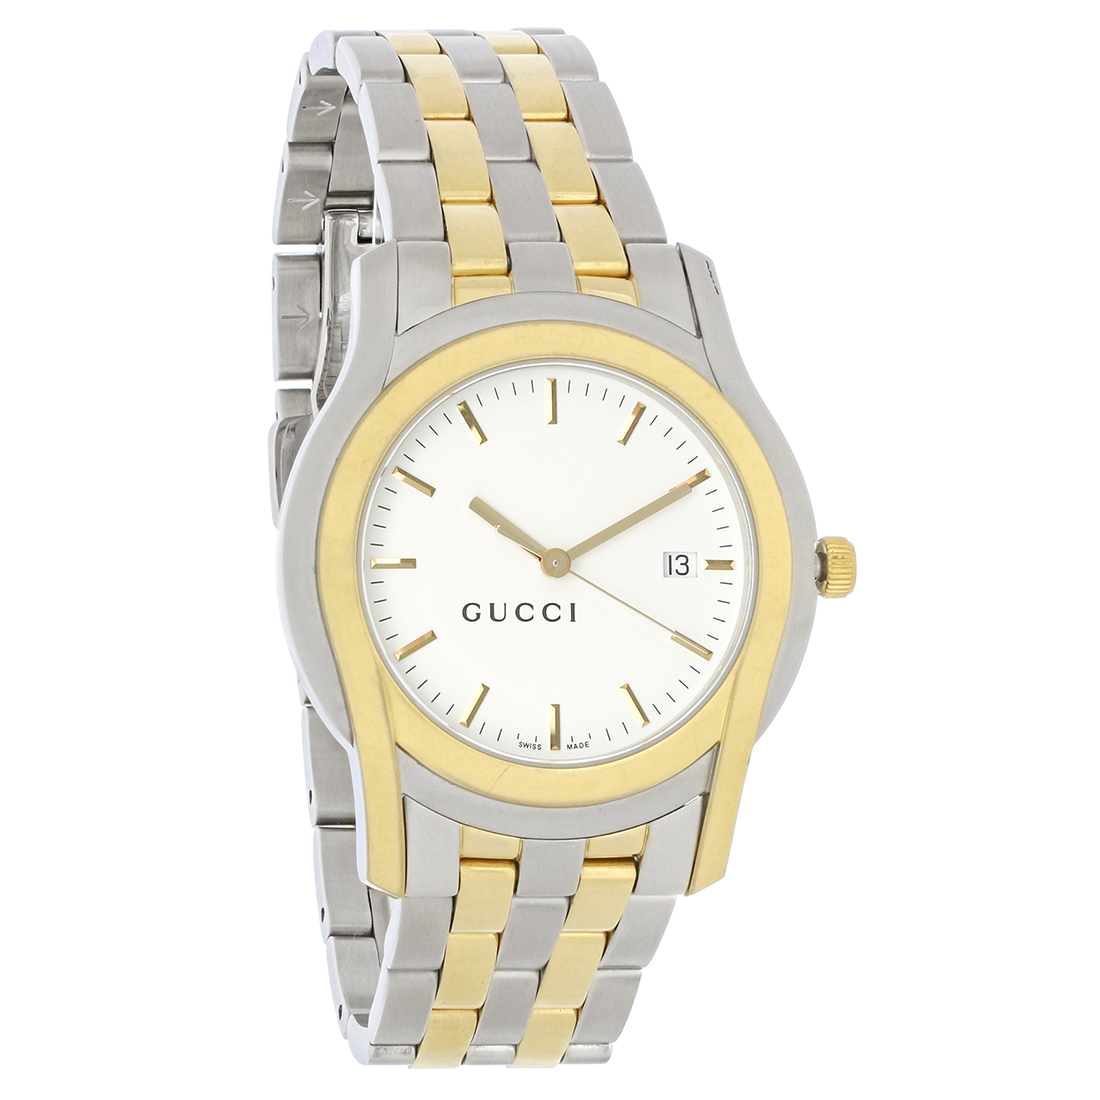 056800ac5c3 Gucci 5500 XL Series Mens White Dial Two Tone Dress Quartz Watch YA055216